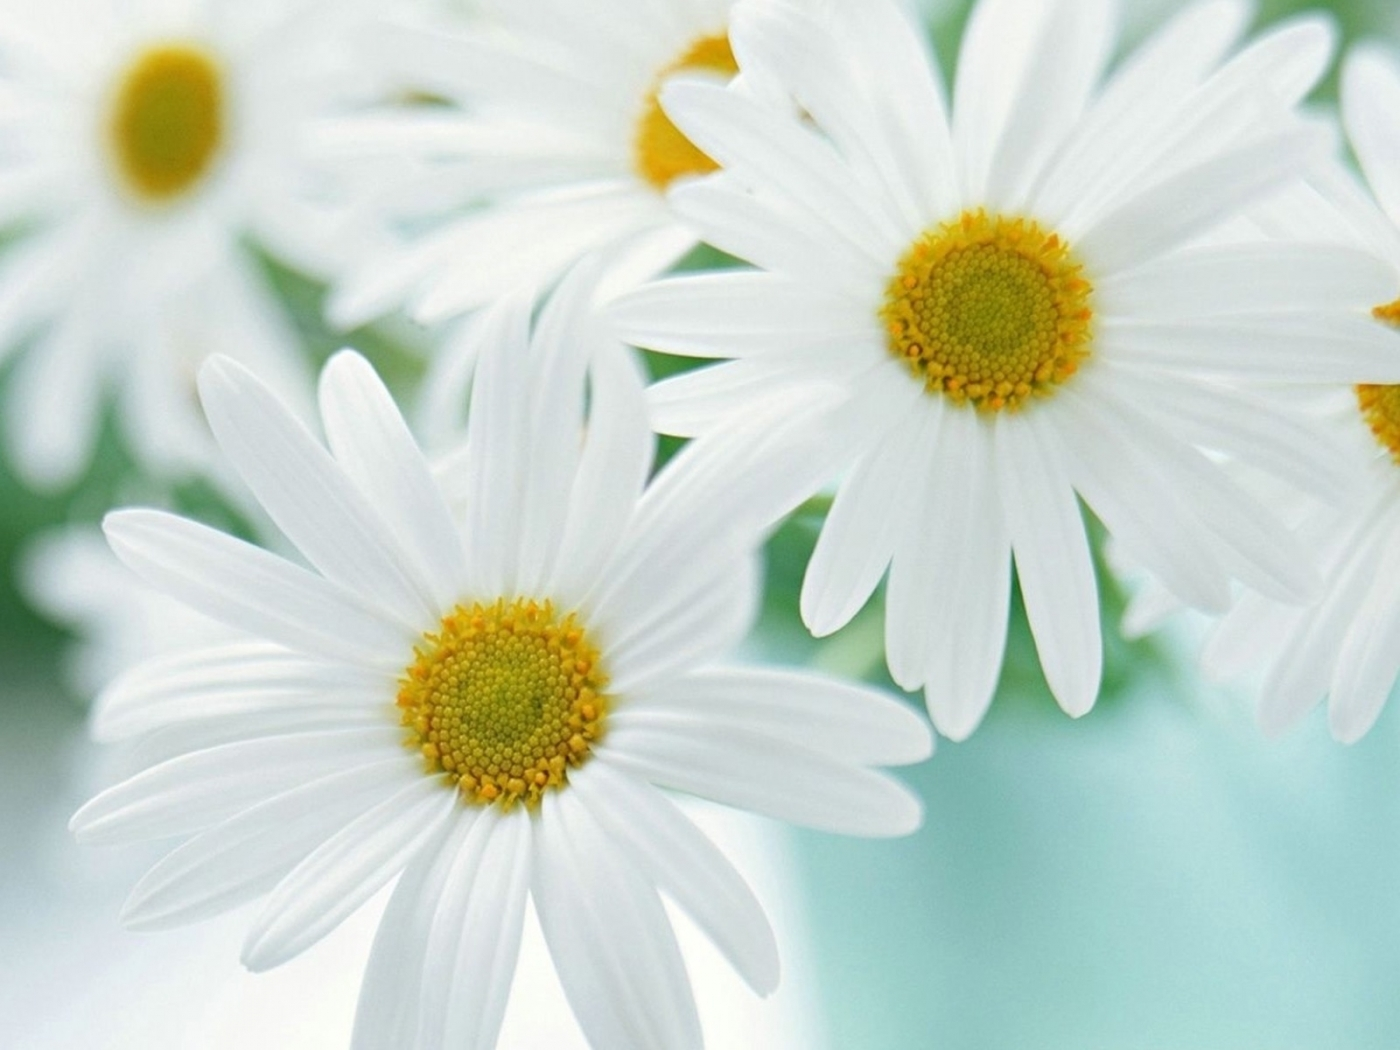 48415 download wallpaper Plants, Flowers, Camomile screensavers and pictures for free